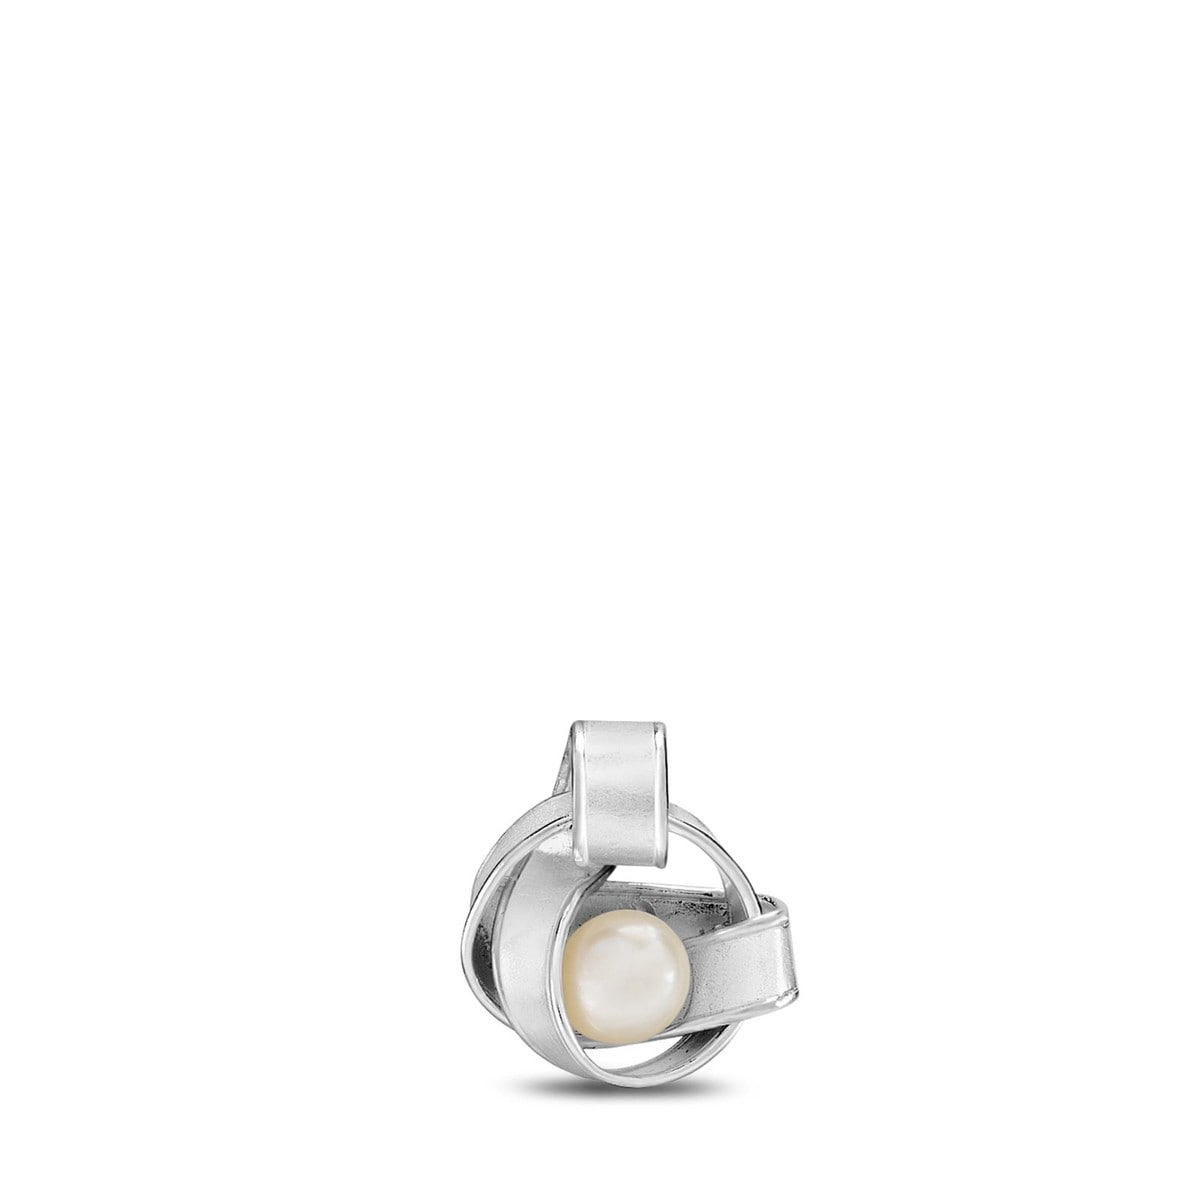 Silver Nostalgic Pendant with Pearl